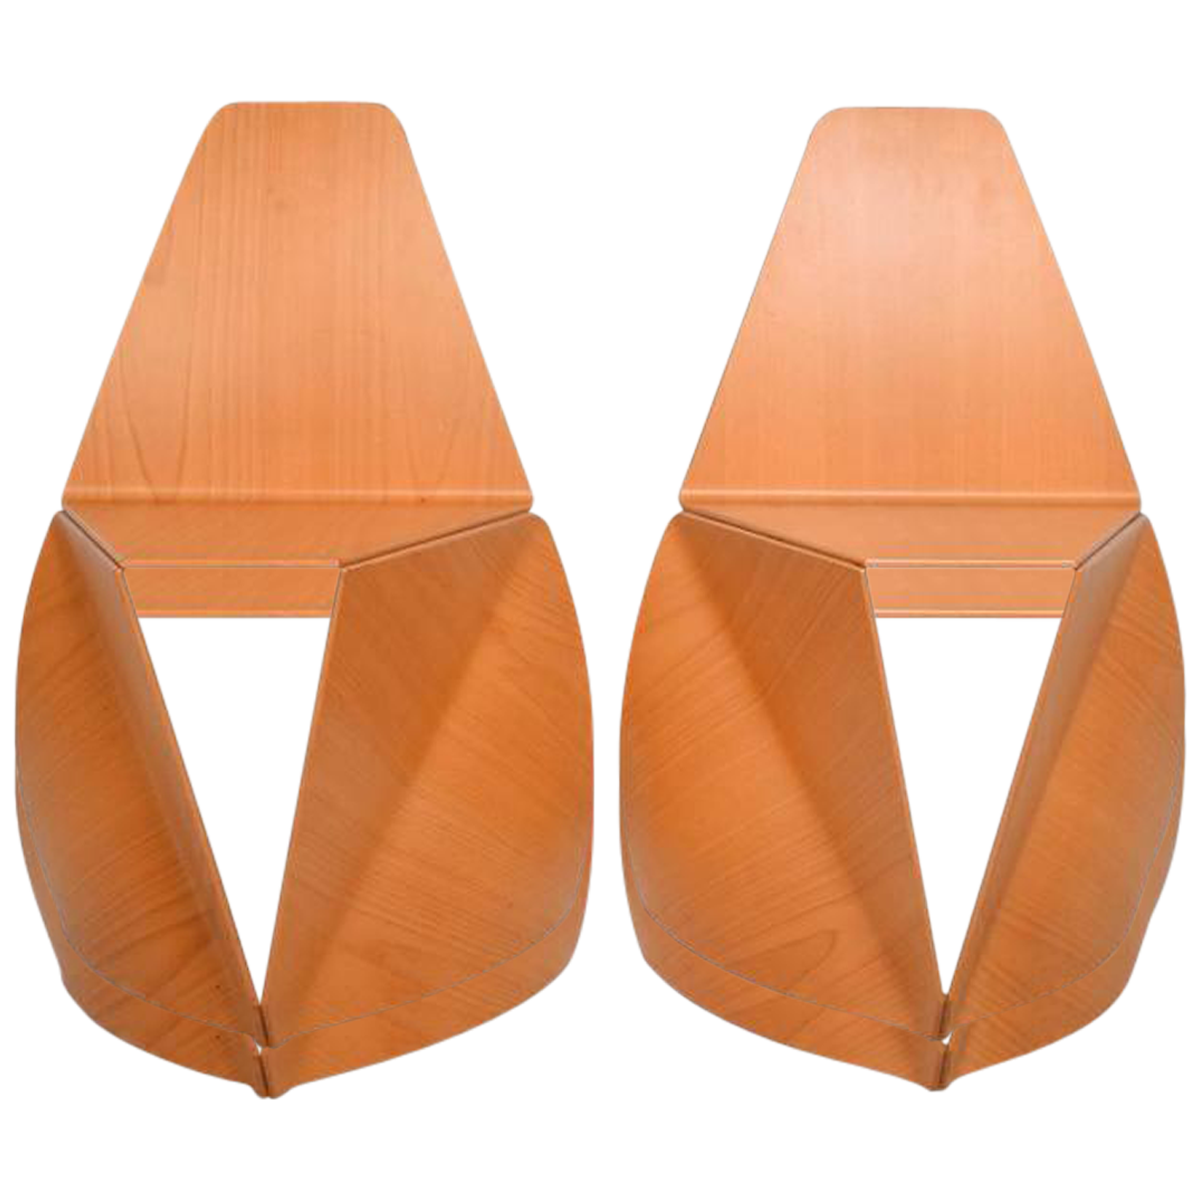 Modern Bent Plywood Chairs